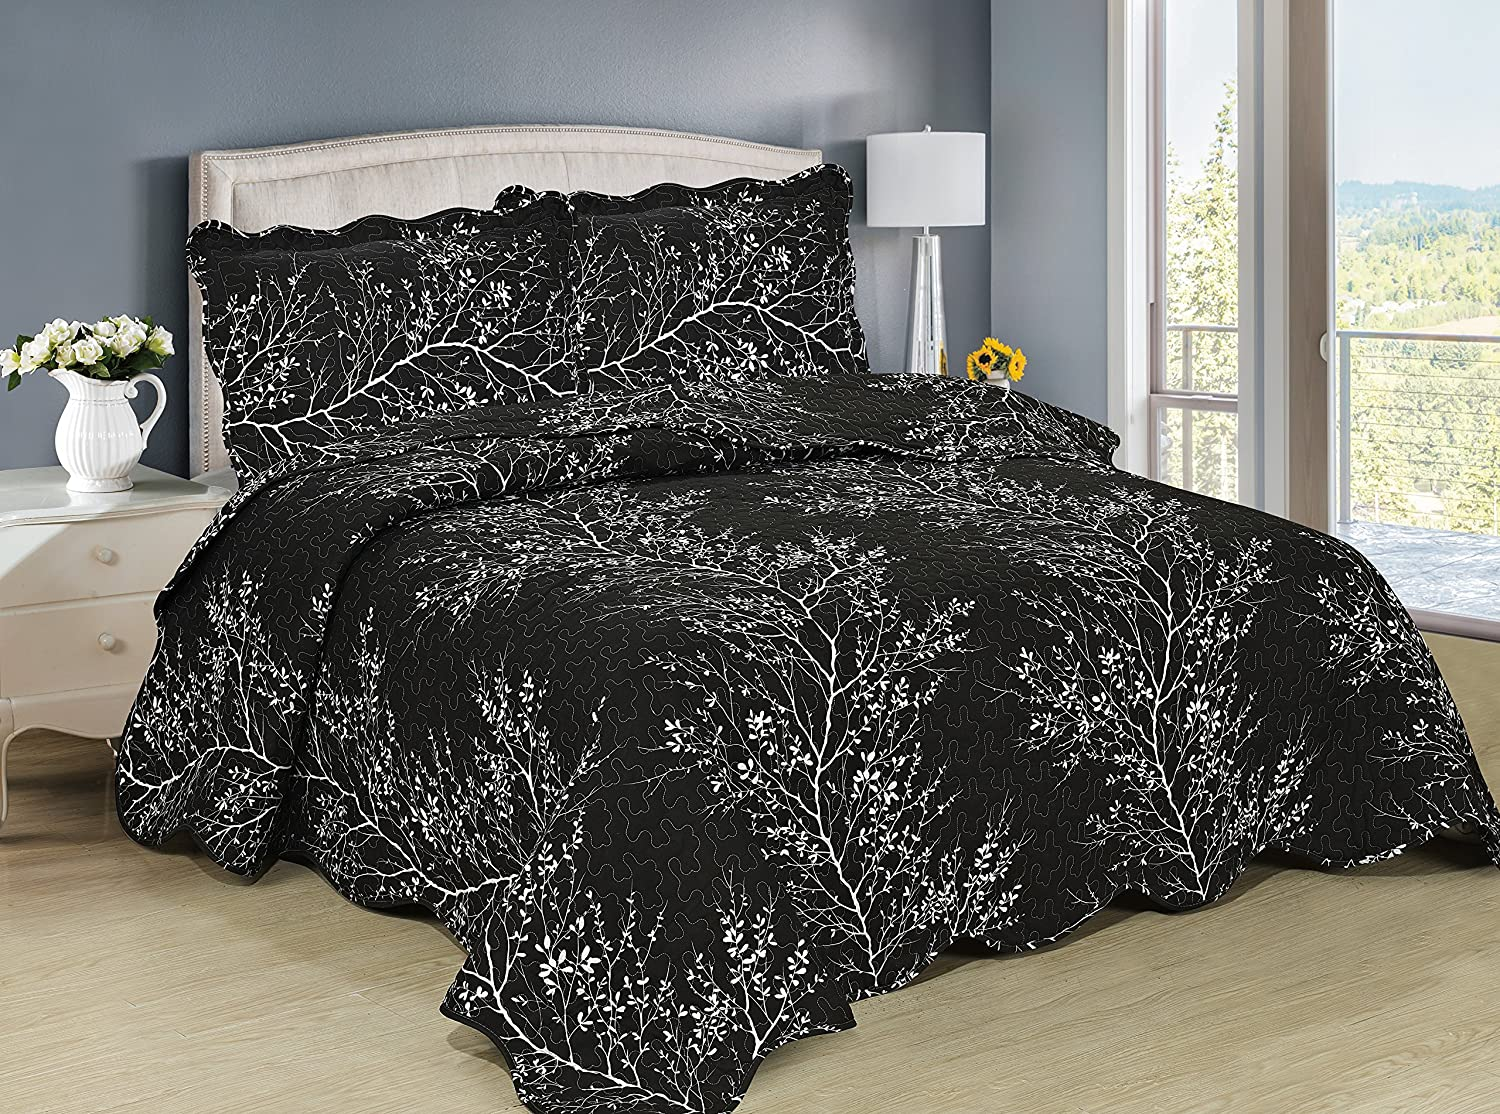 3-Piece Black Silhouette Quilted Bedspread Set, Wrinkle Resistant, Multiple Styles ( King )